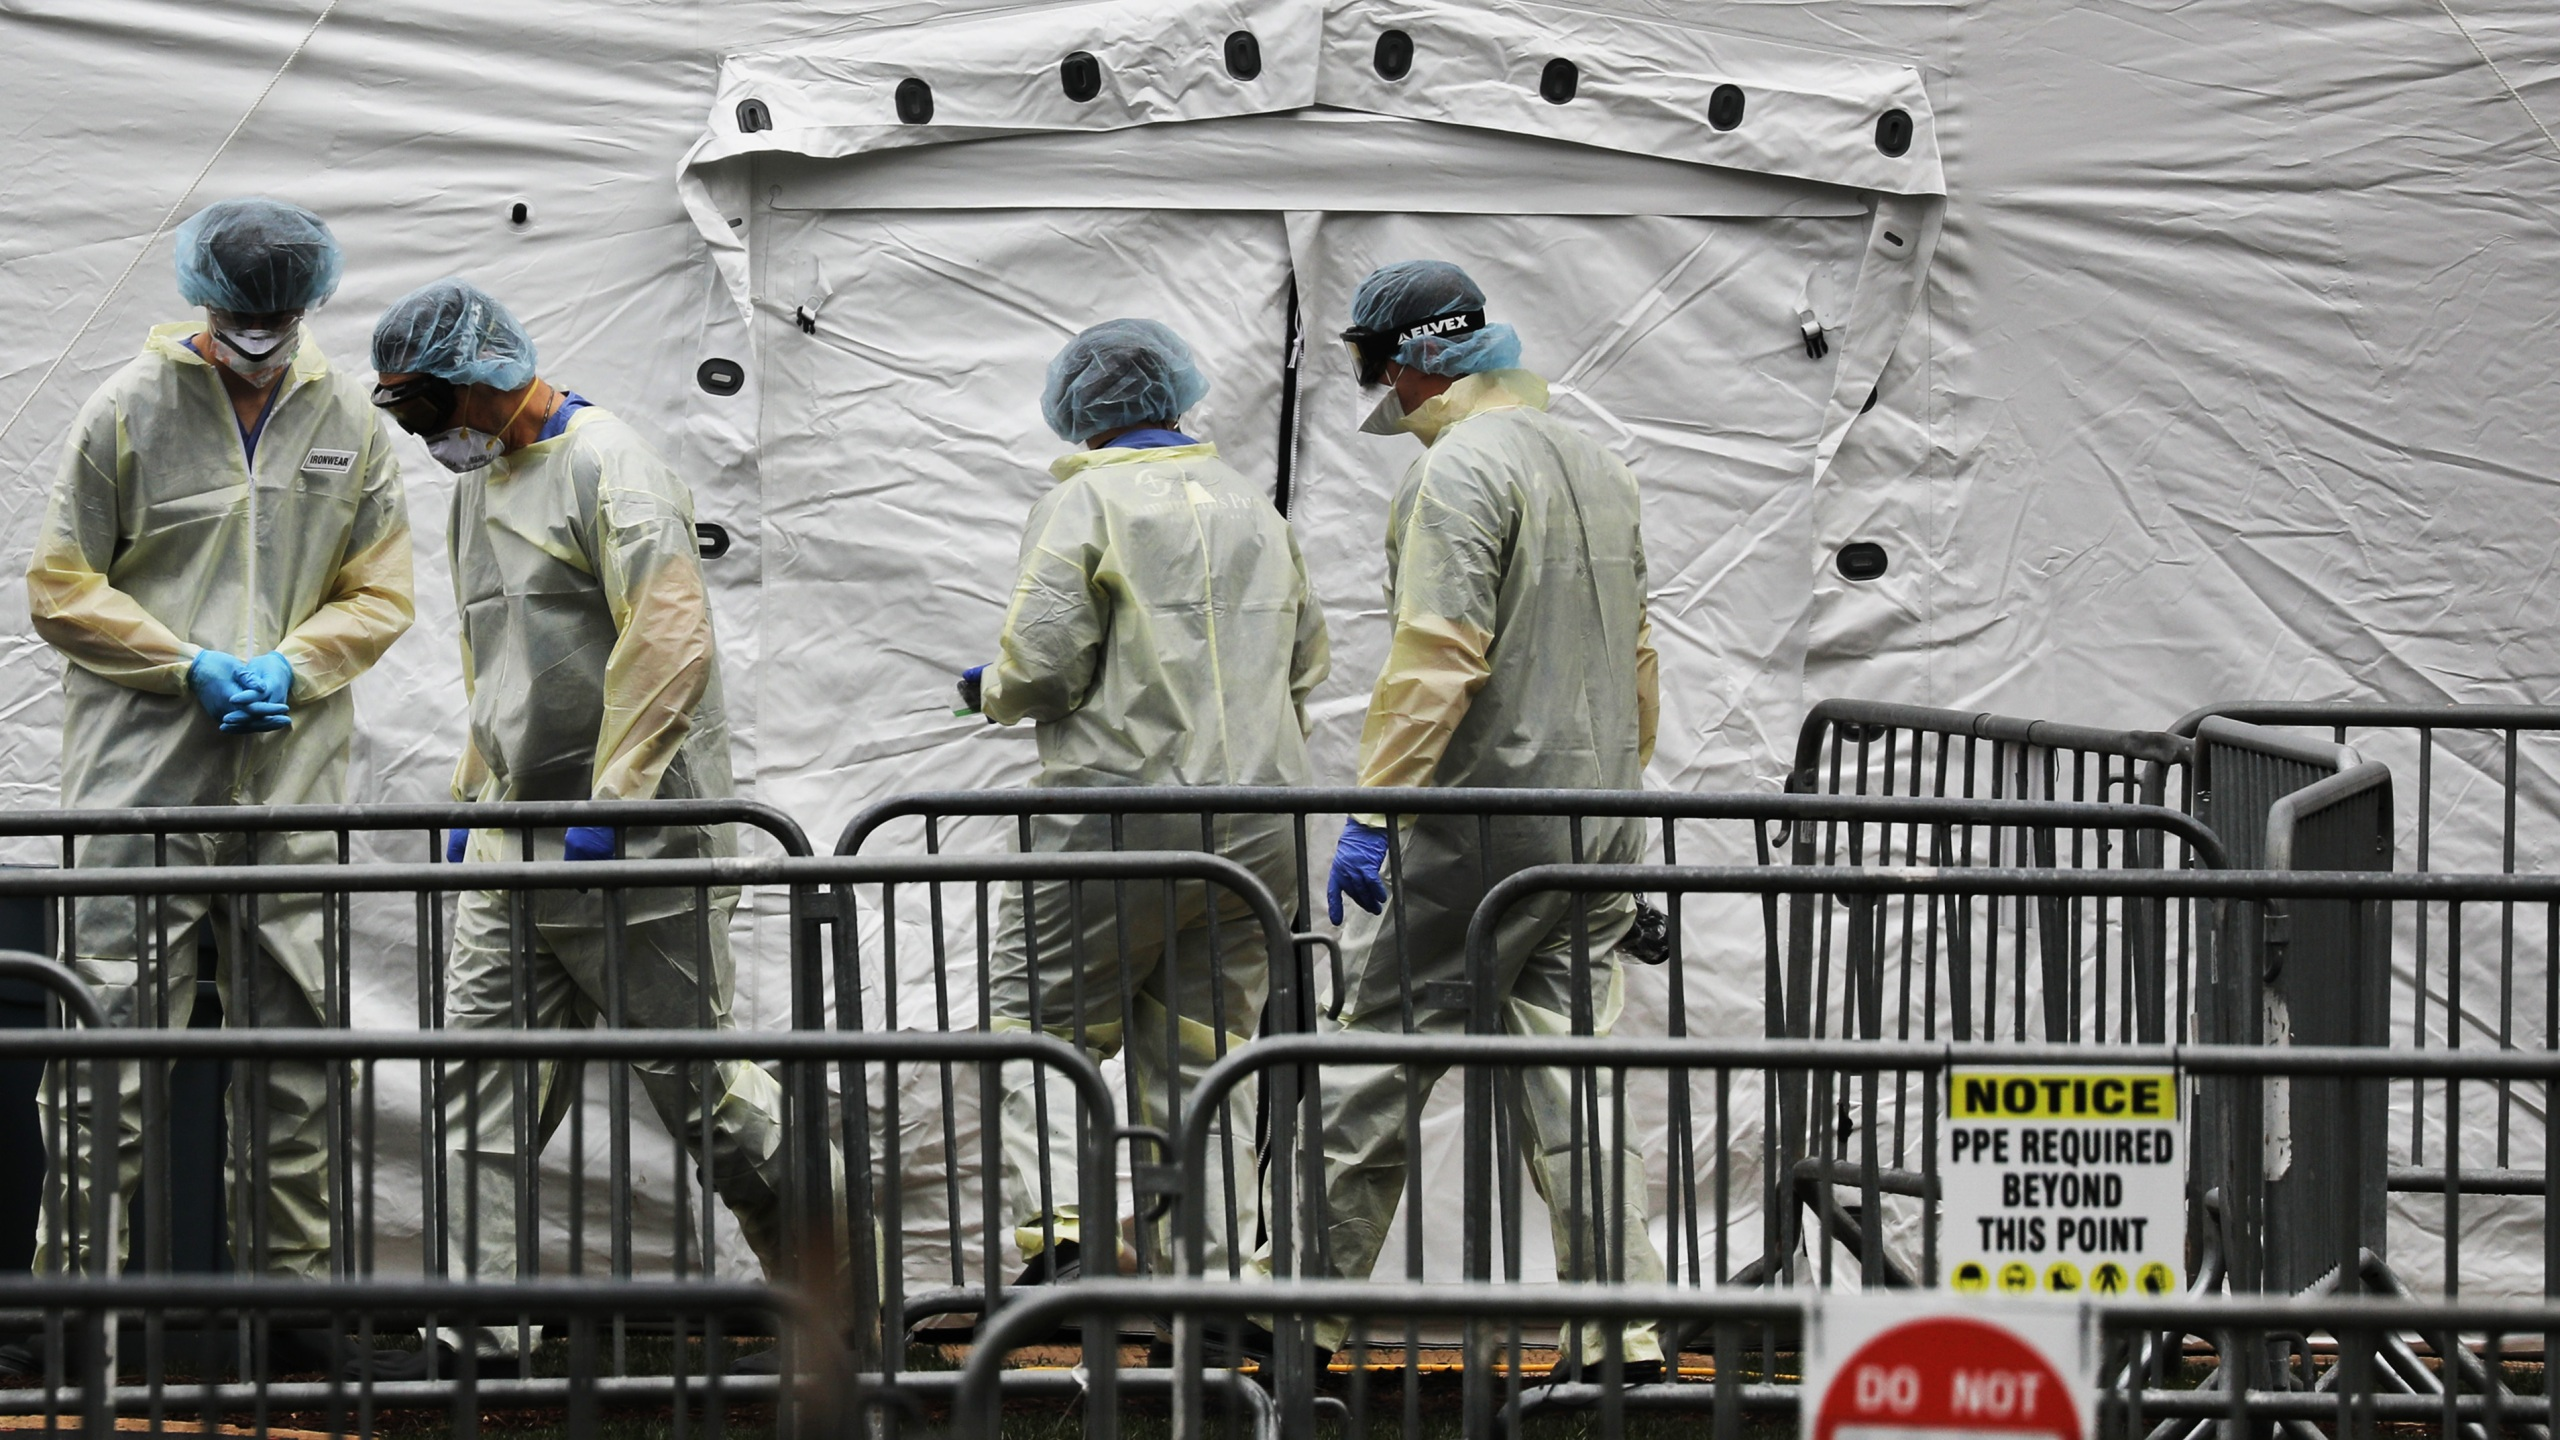 Members of the International Christian humanitarian organization Samaritans' Purse gather at a field hospital in New York's Central Park on April 4, 2020 in New York City. (Getty Images)